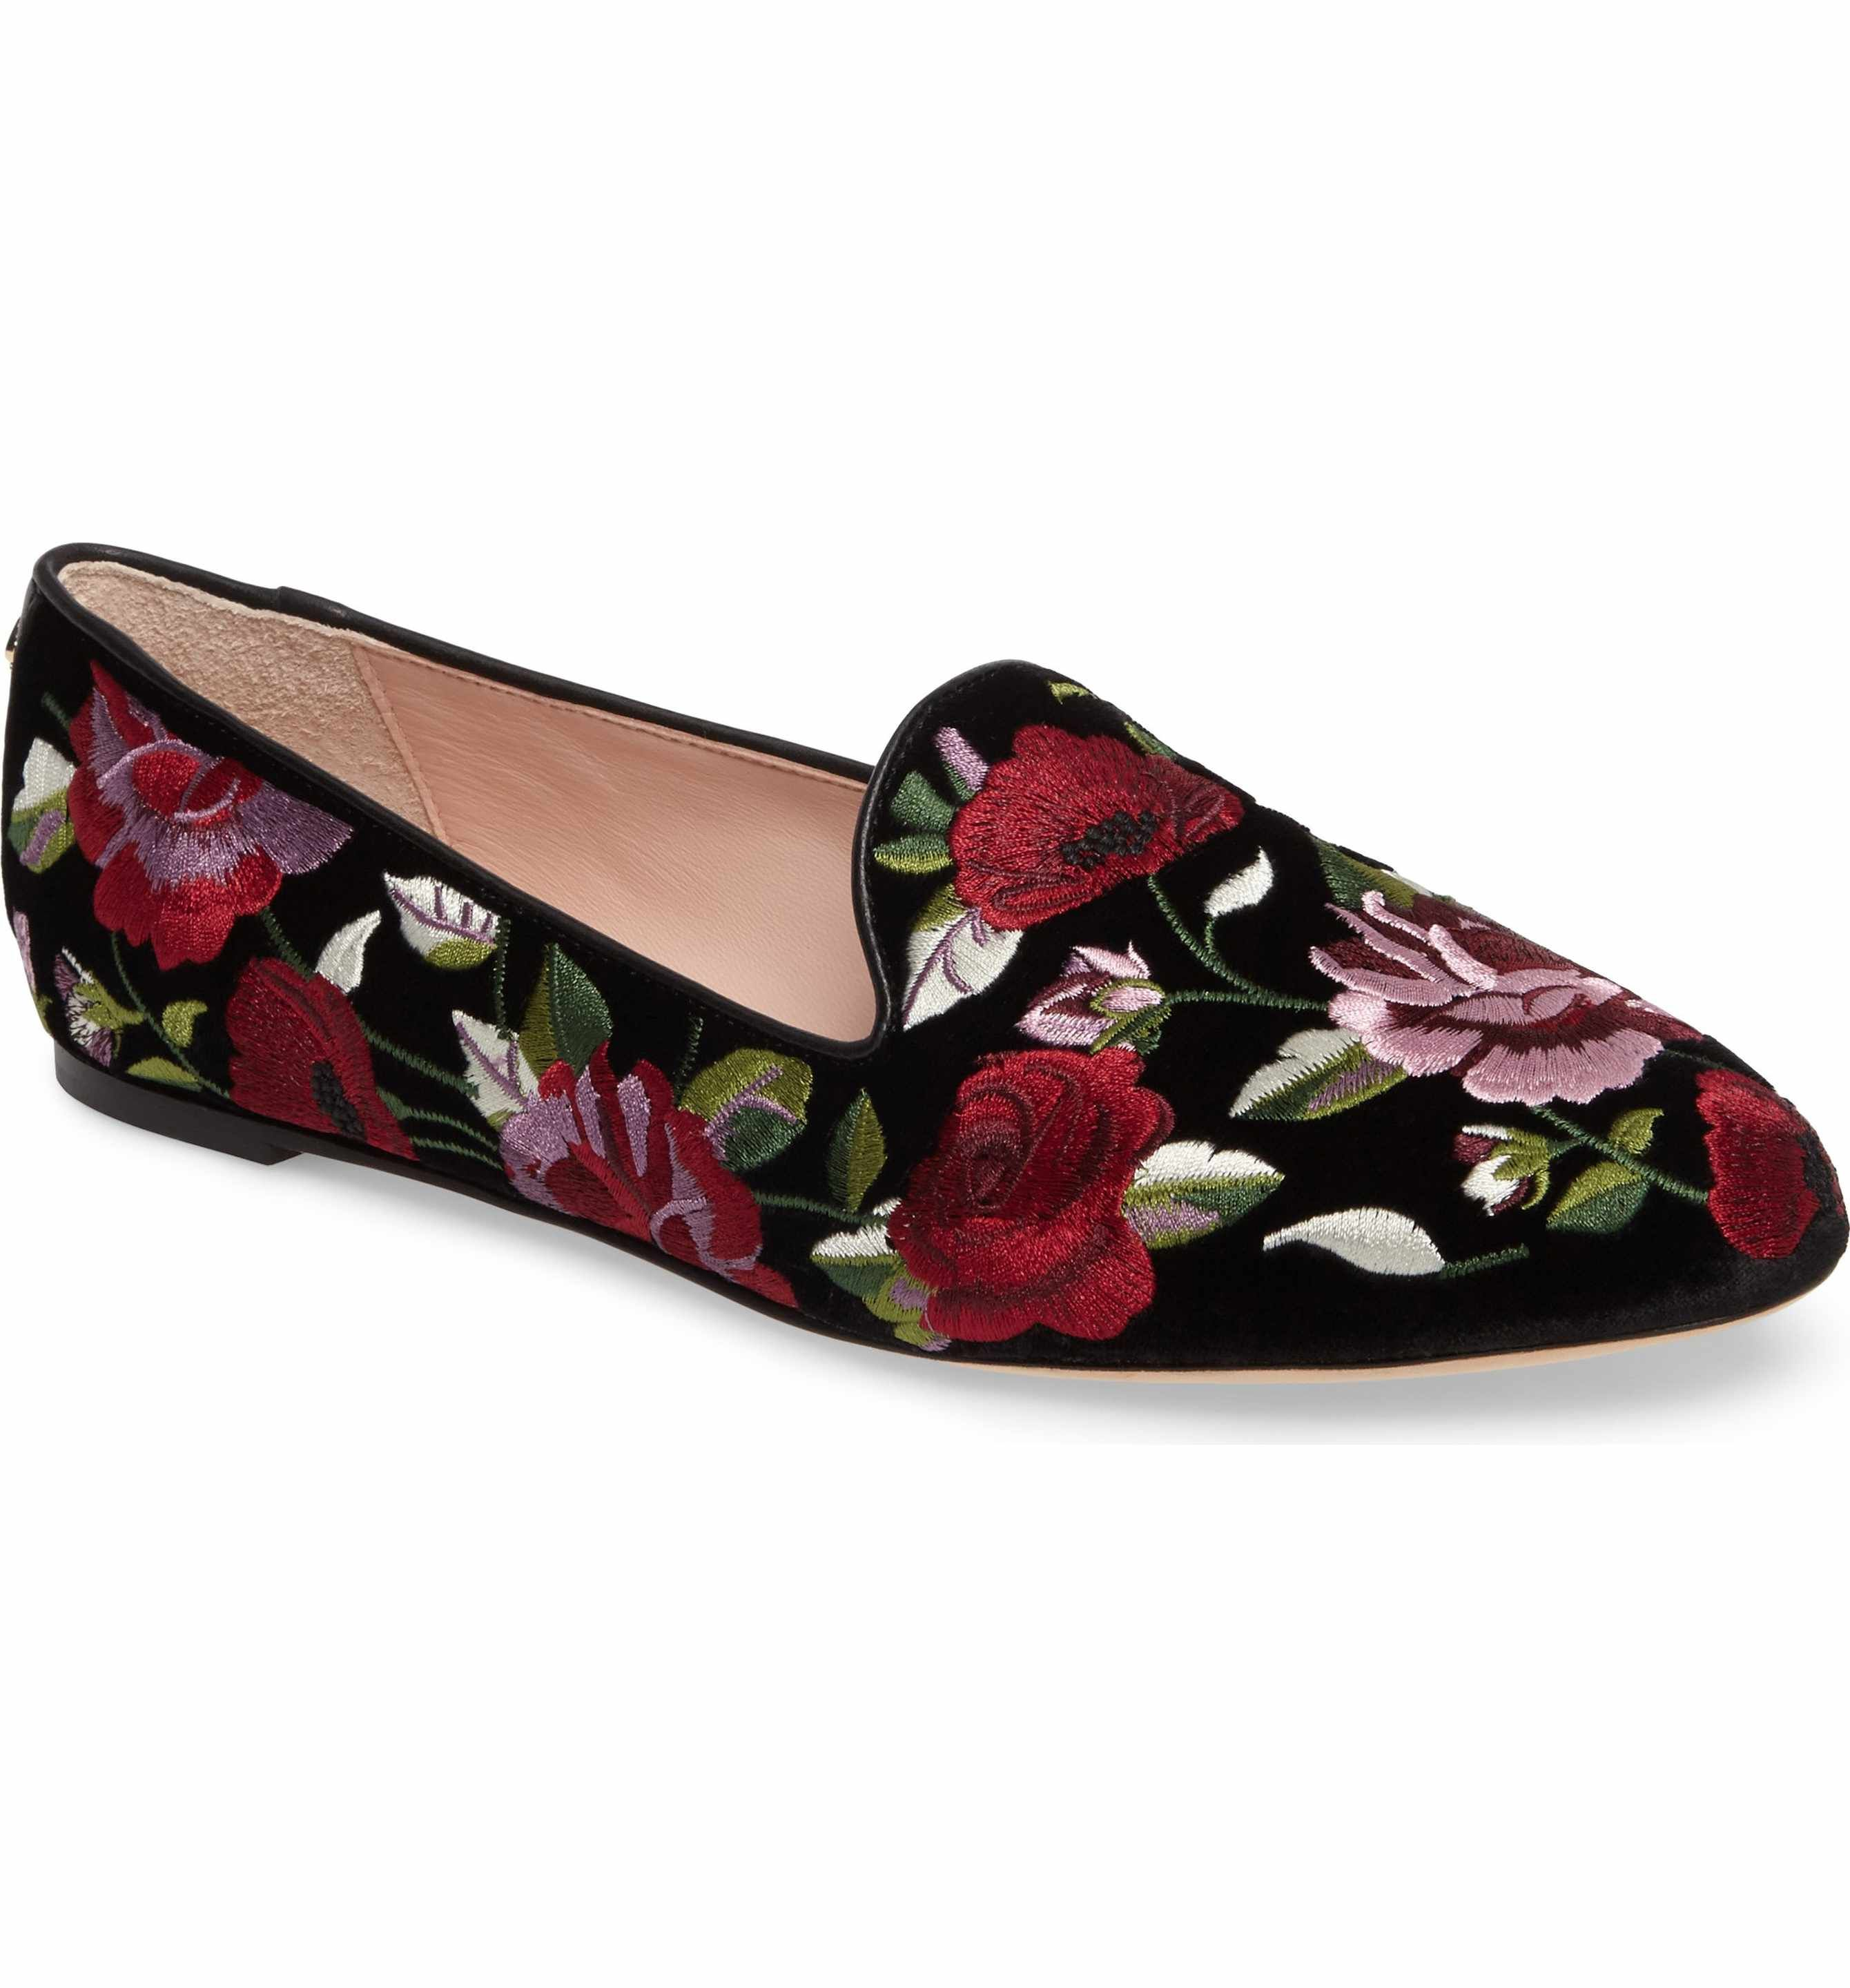 websites online cheap 2014 newest Kate Spade New York Floral Jacquard Loafers sneakernews online cheap price in China cheap wholesale price GObEKH